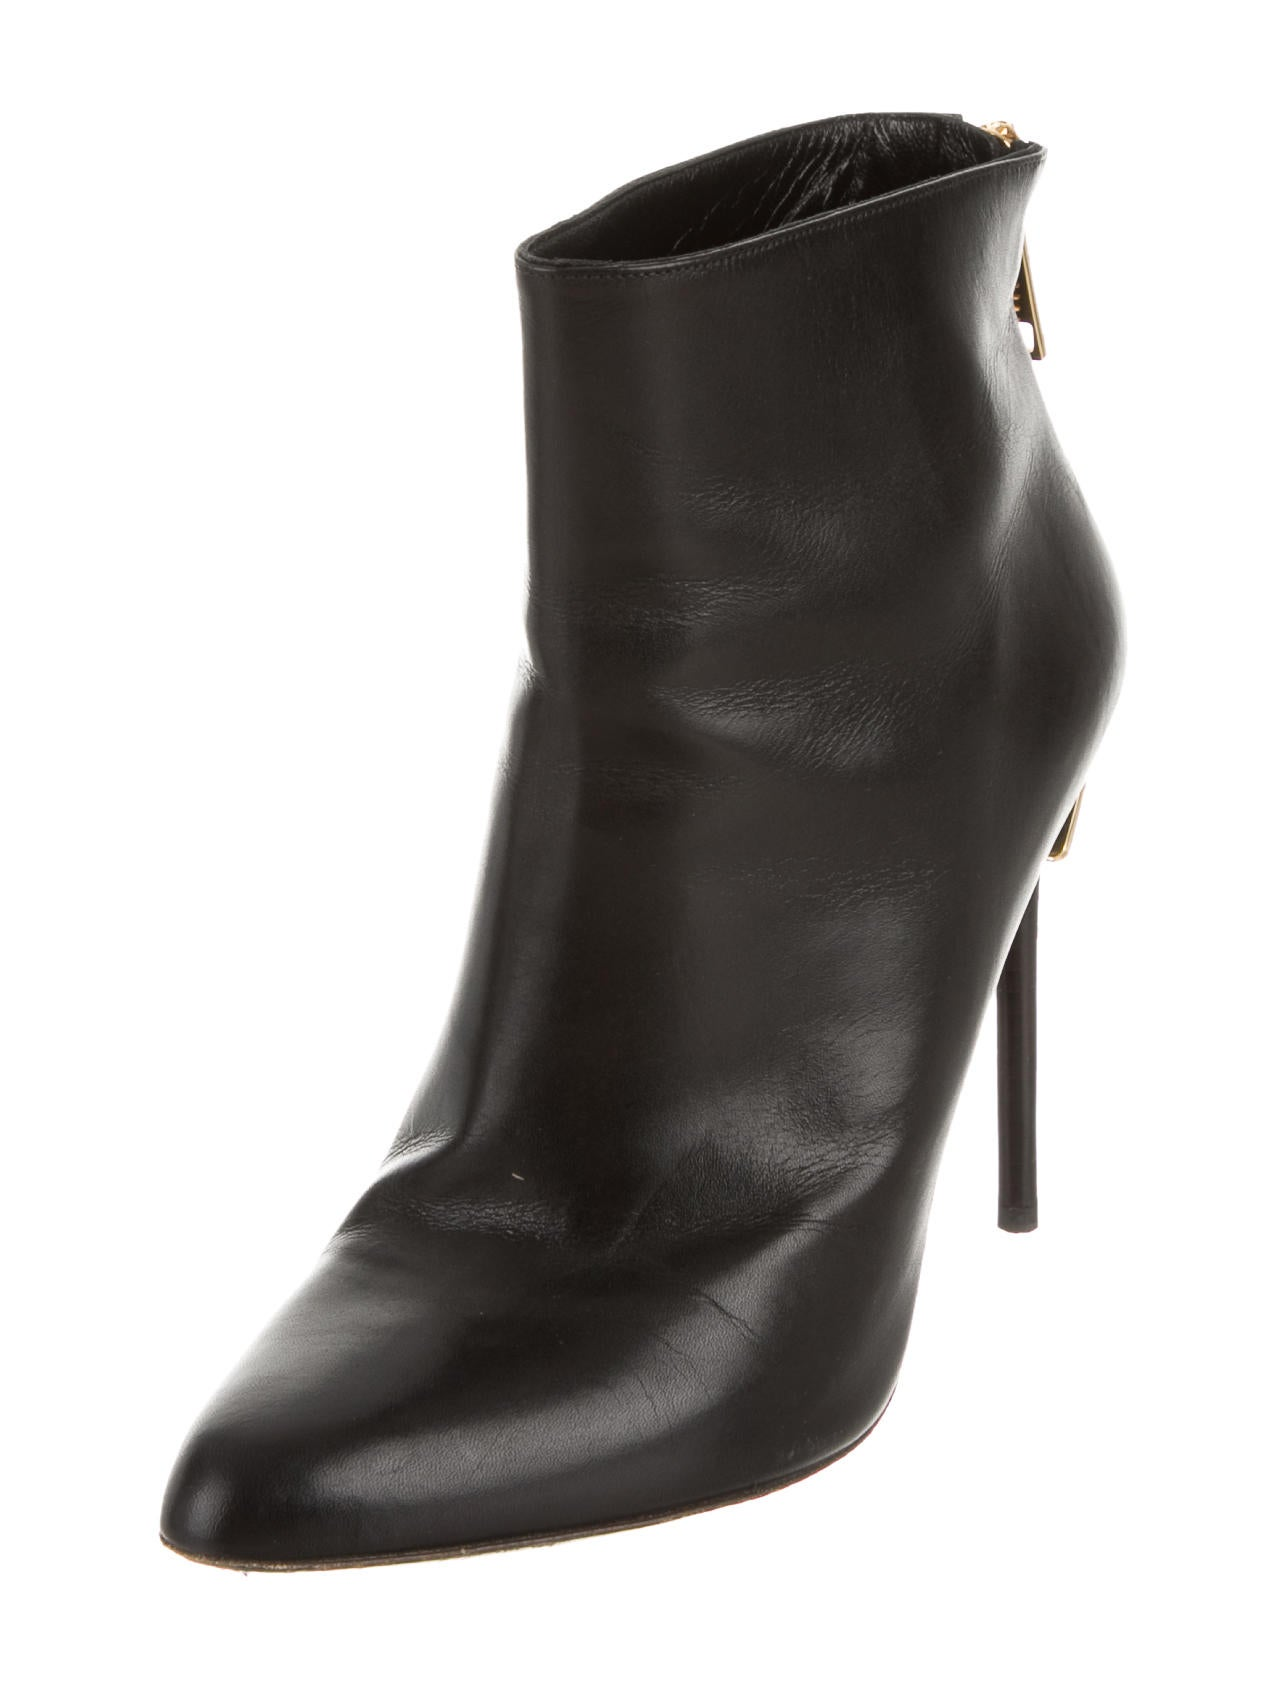 tom ford leather ankle boots shoes tom25146 the realreal